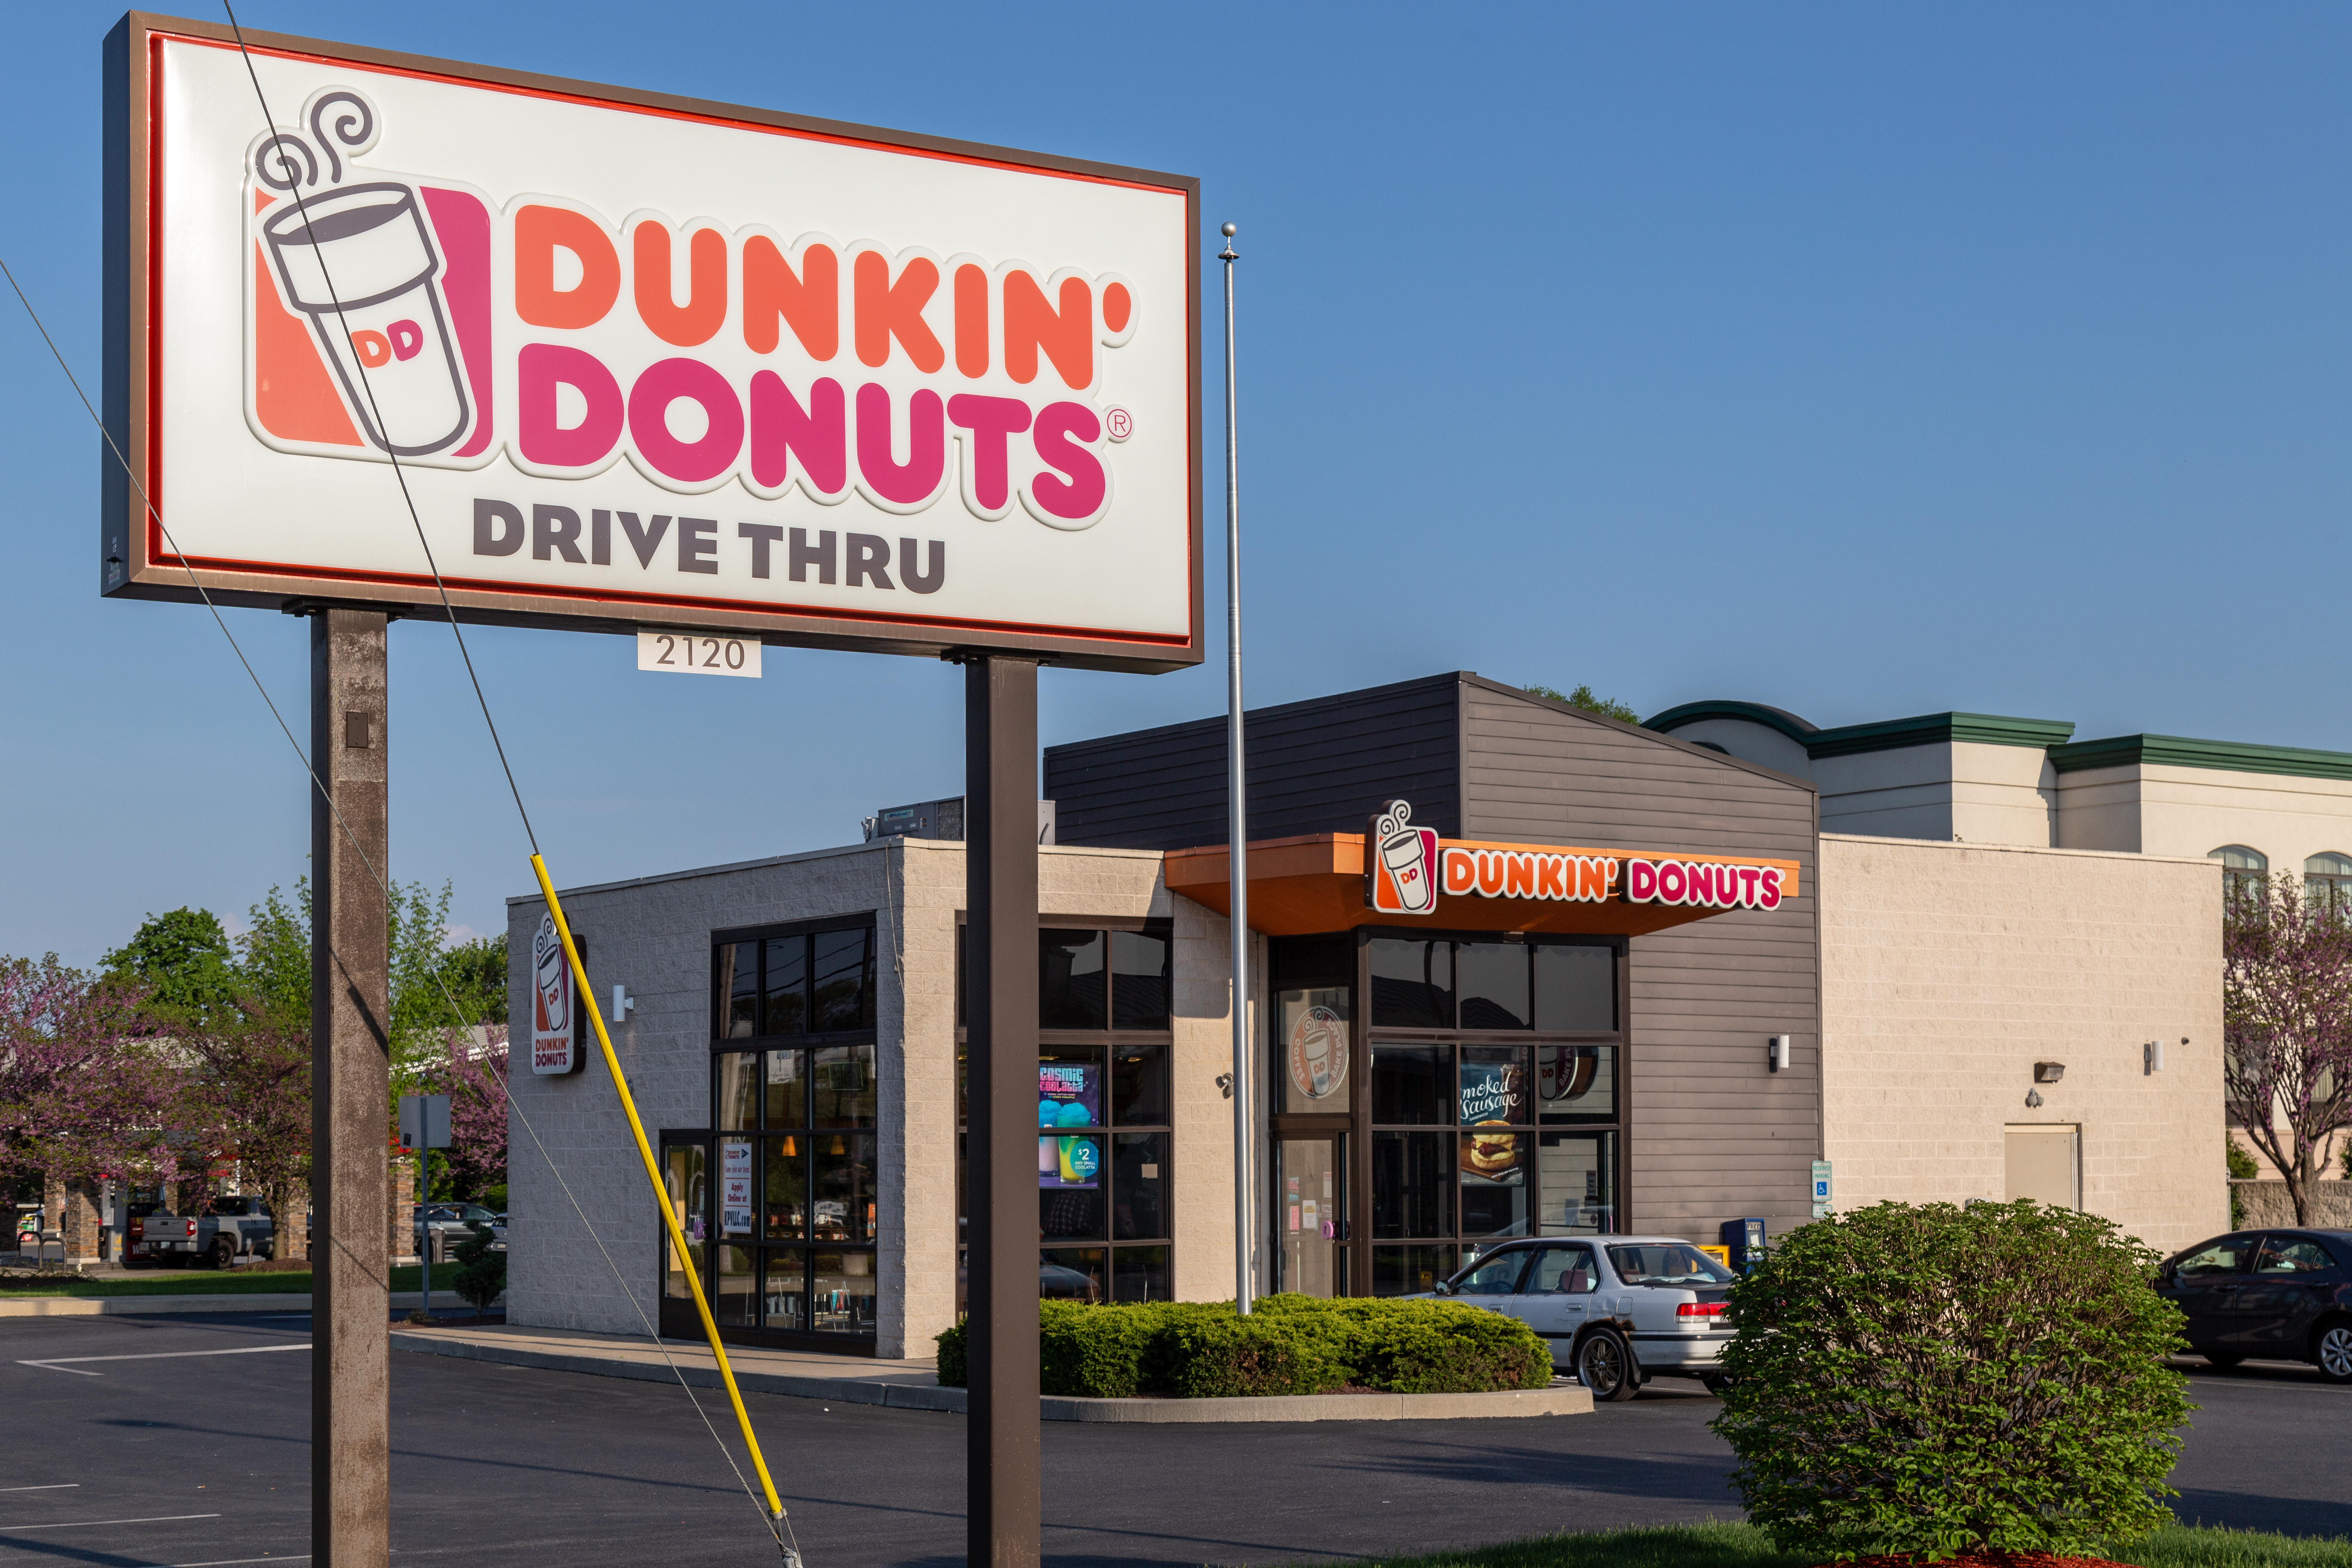 A Dunkin' Donuts store exterior.